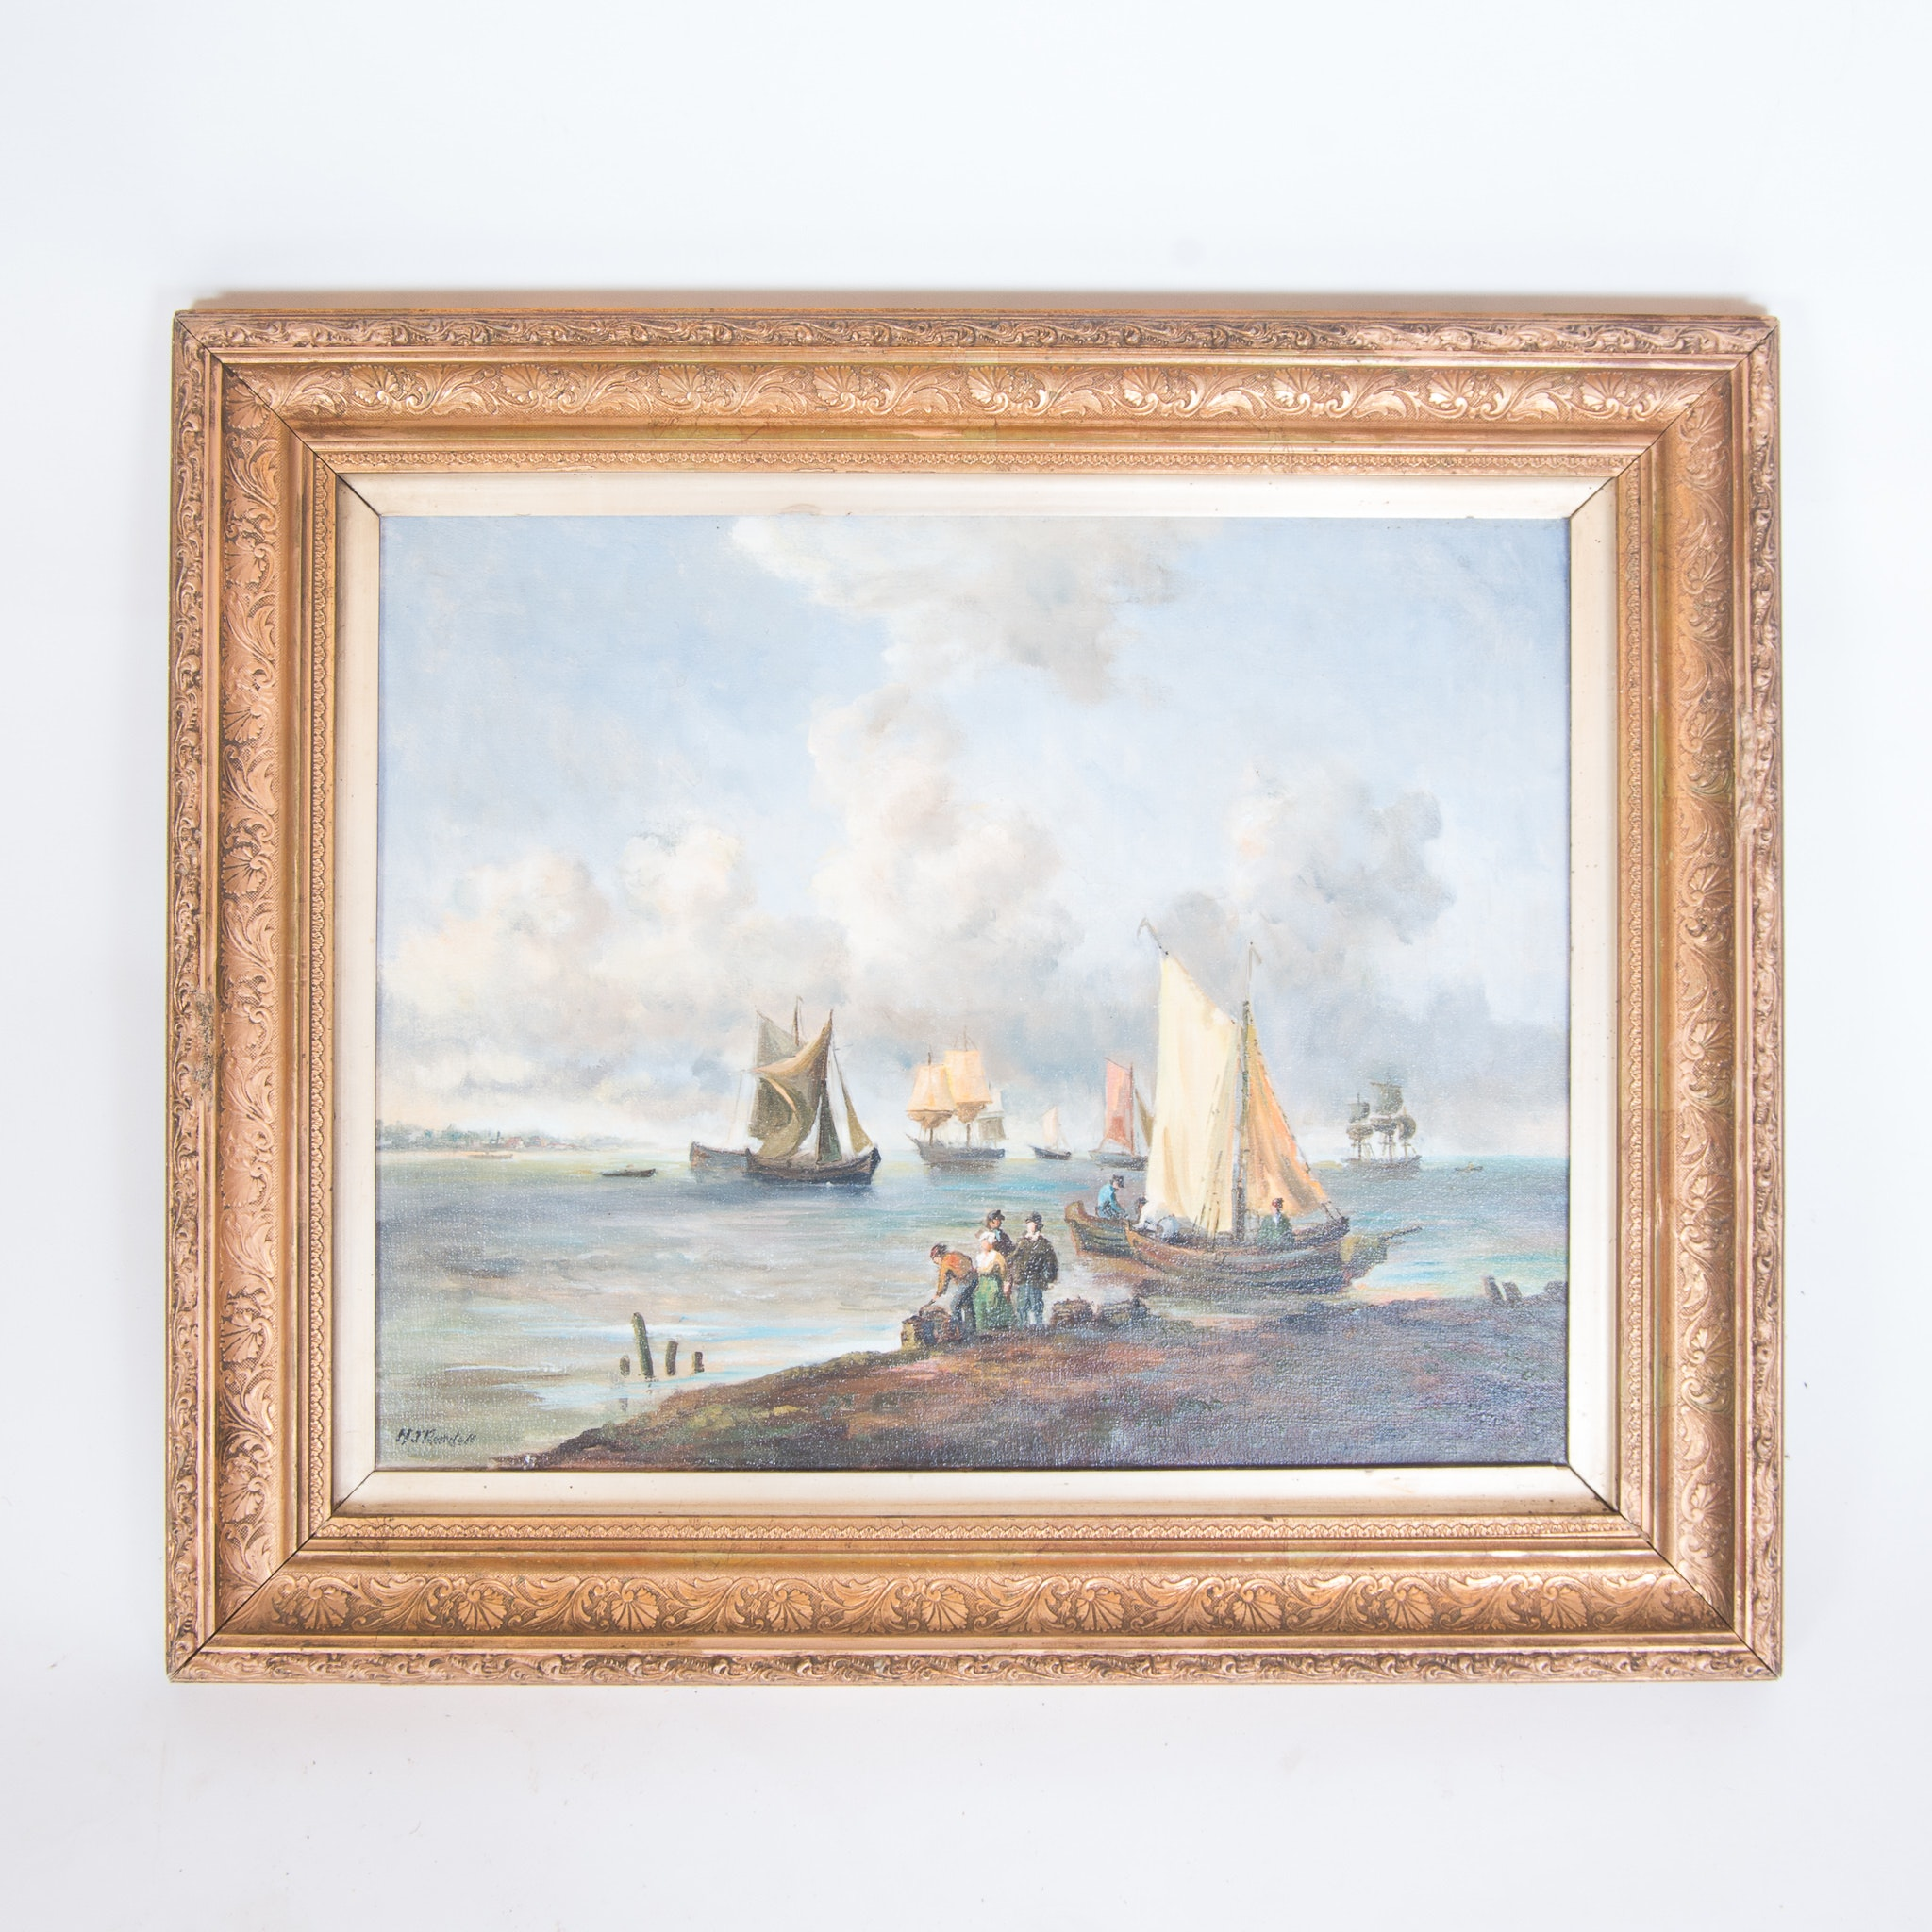 M J Rendell Signed Original Oil Painting of a Seascape